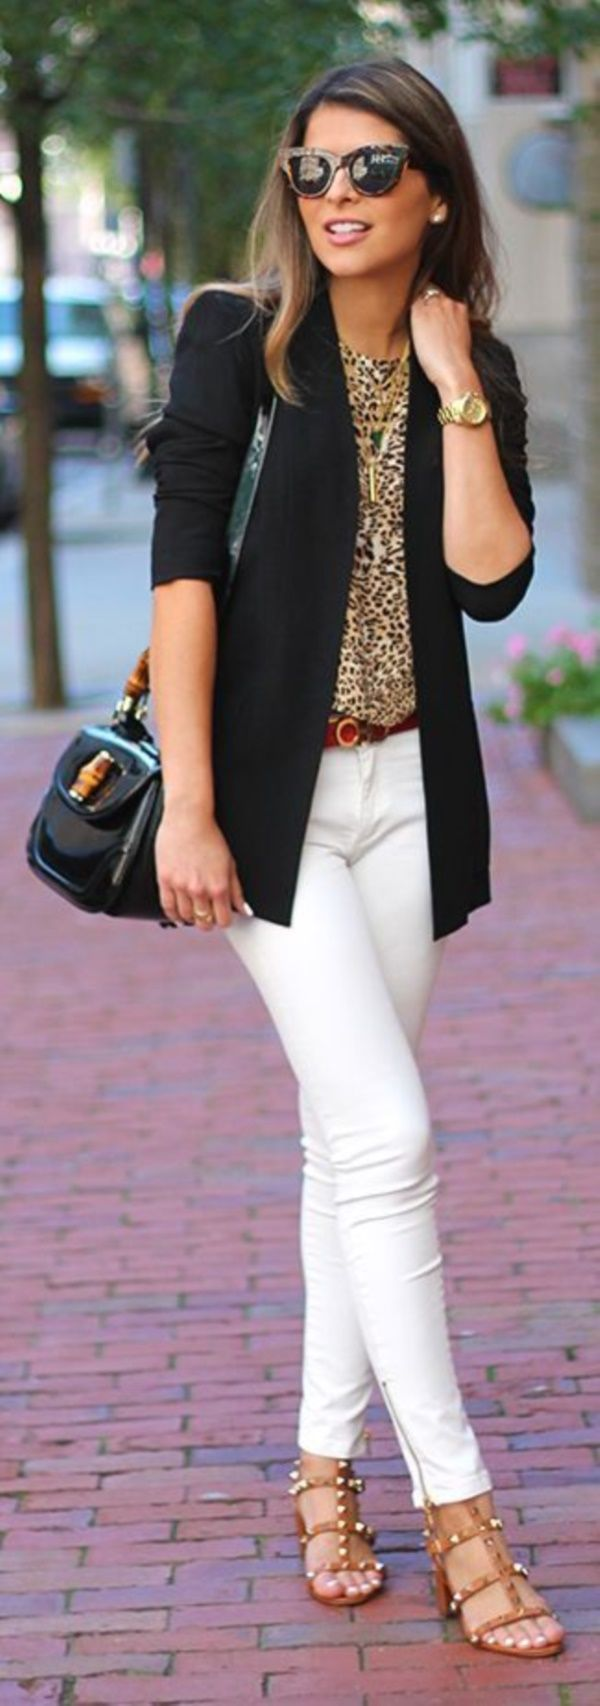 45 Elegant White Jeans Outfits for You   http://hercanvas.com/elegant-white-jeans-outfits-for-you/